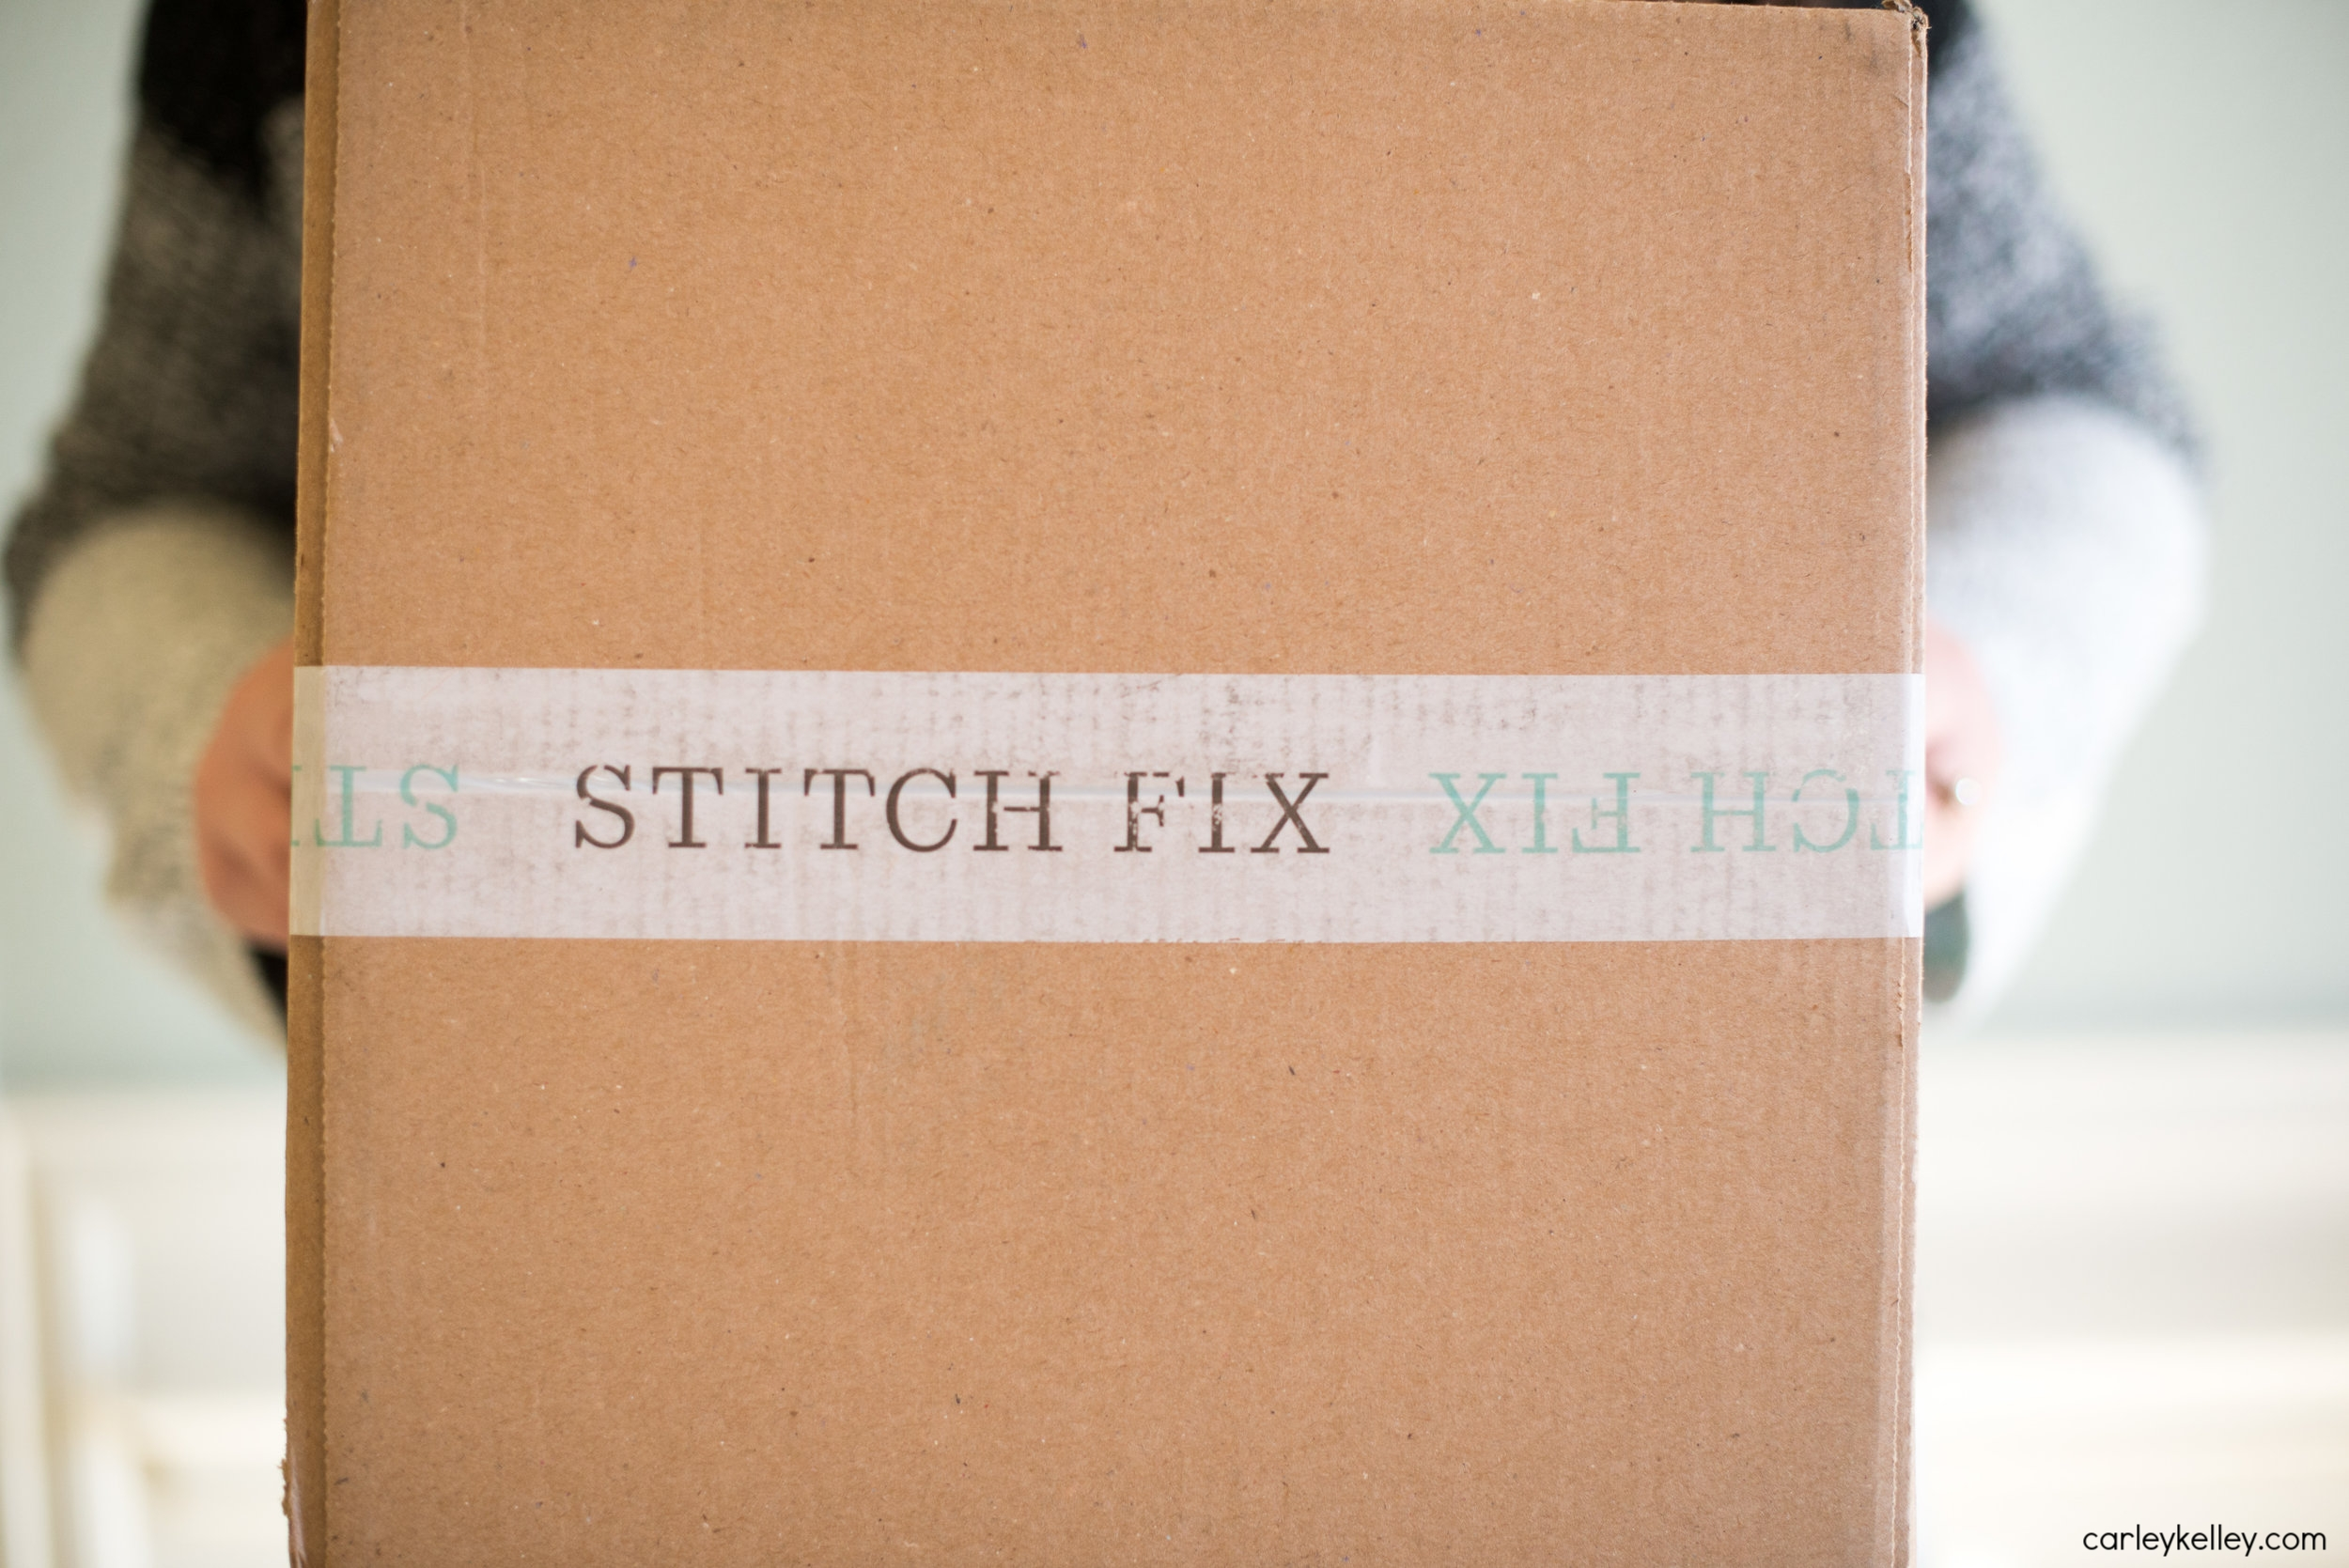 firststitchfixcarleykelley